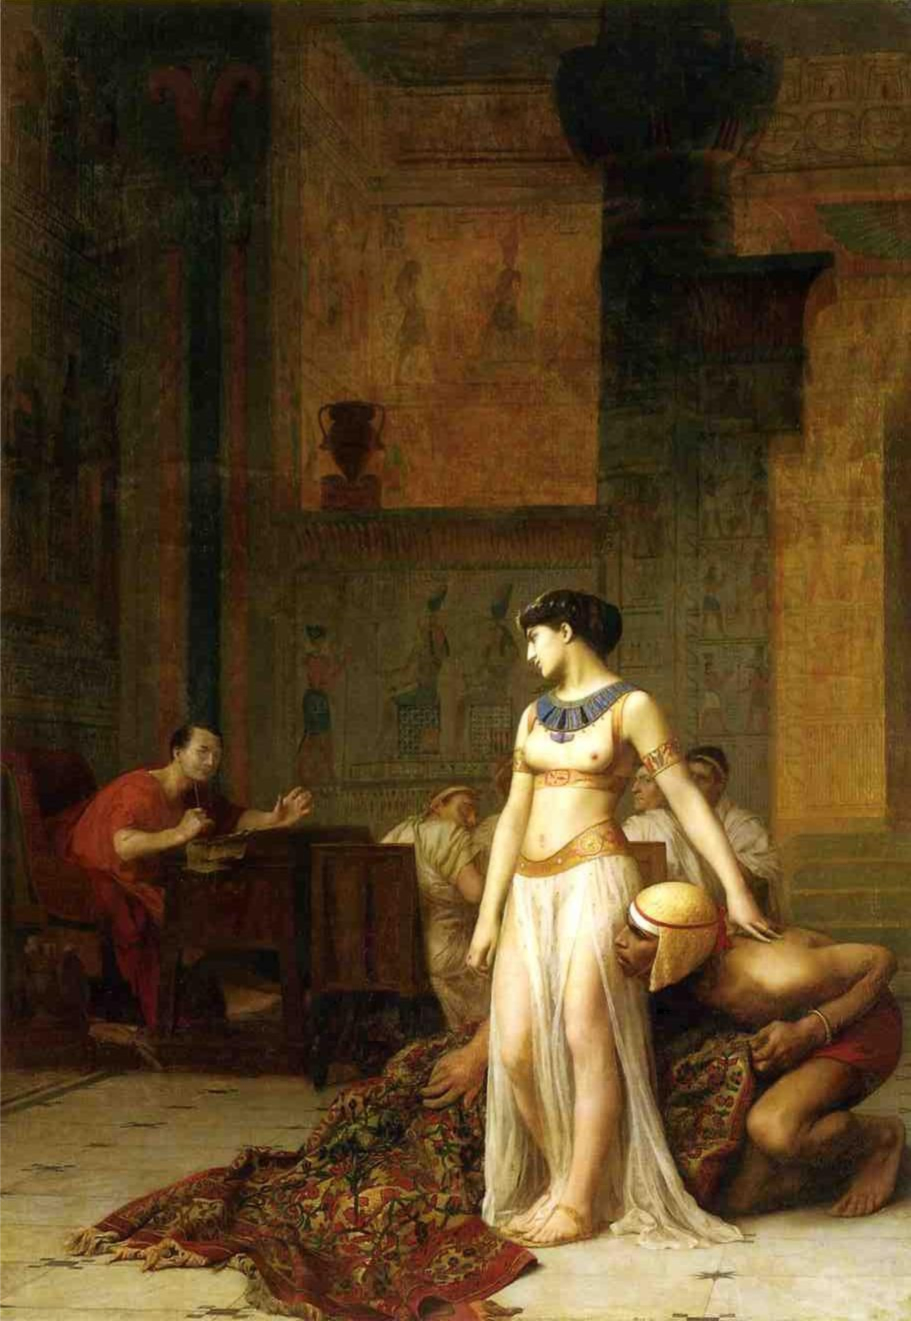 http://upload.wikimedia.org/wikipedia/commons/c/c3/Cleopatra_and_Caesar_by_Jean-Leon-Gerome.jpg